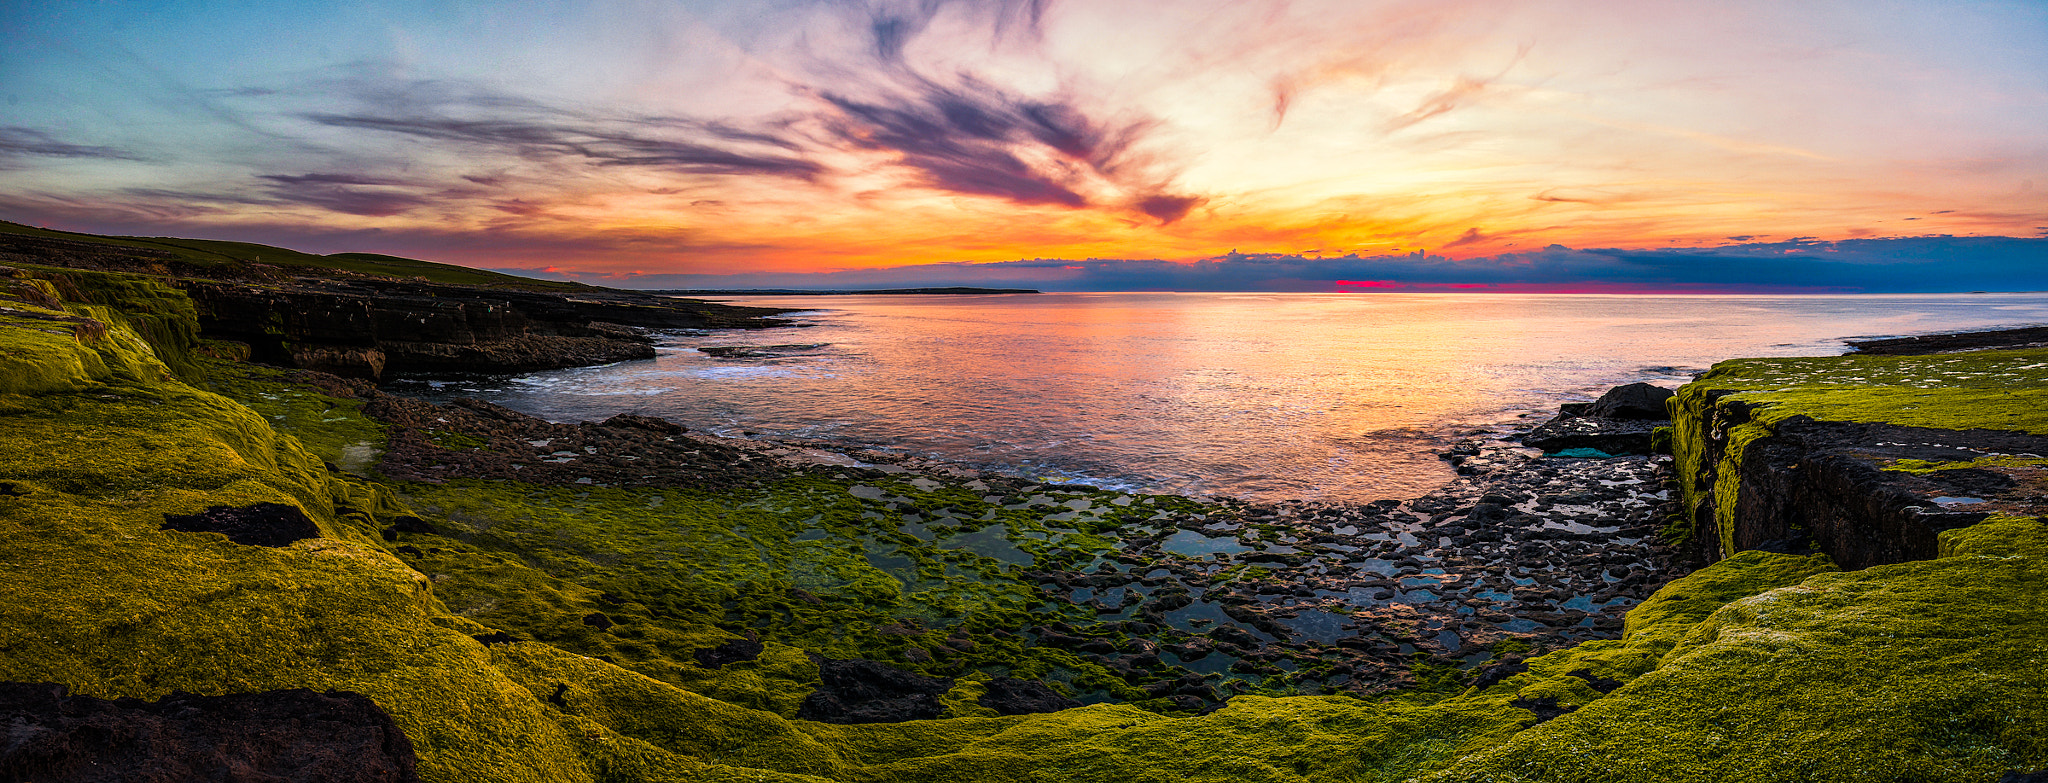 Photograph Sunset from the Cliffs by Gavin Hartigan on 500px